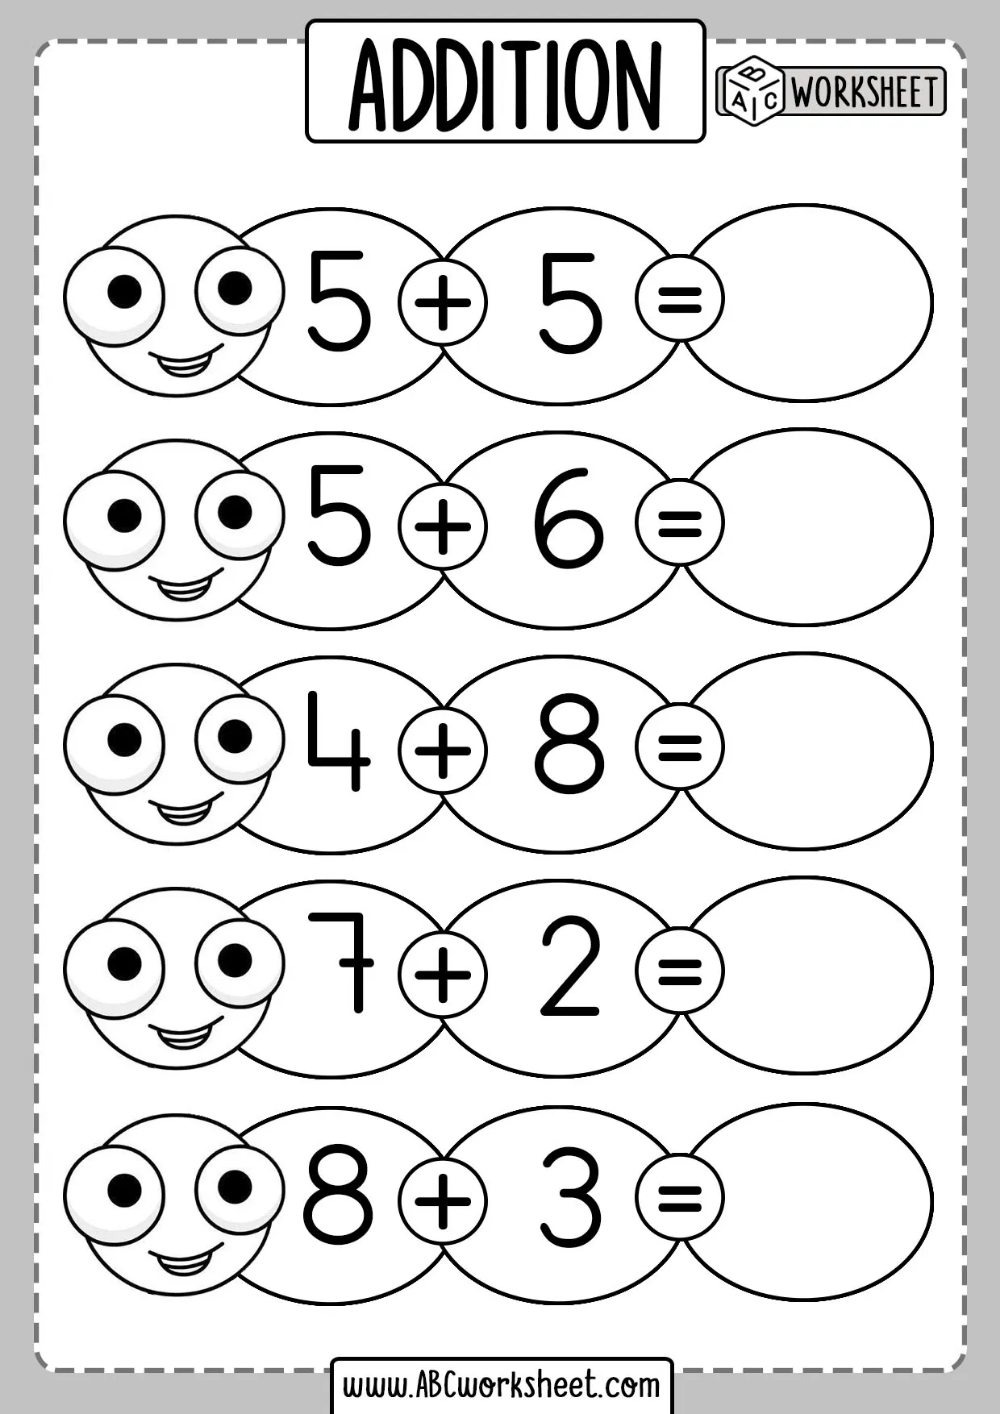 hight resolution of Addition Sums For Grade Kids Worksheet   Addition worksheets